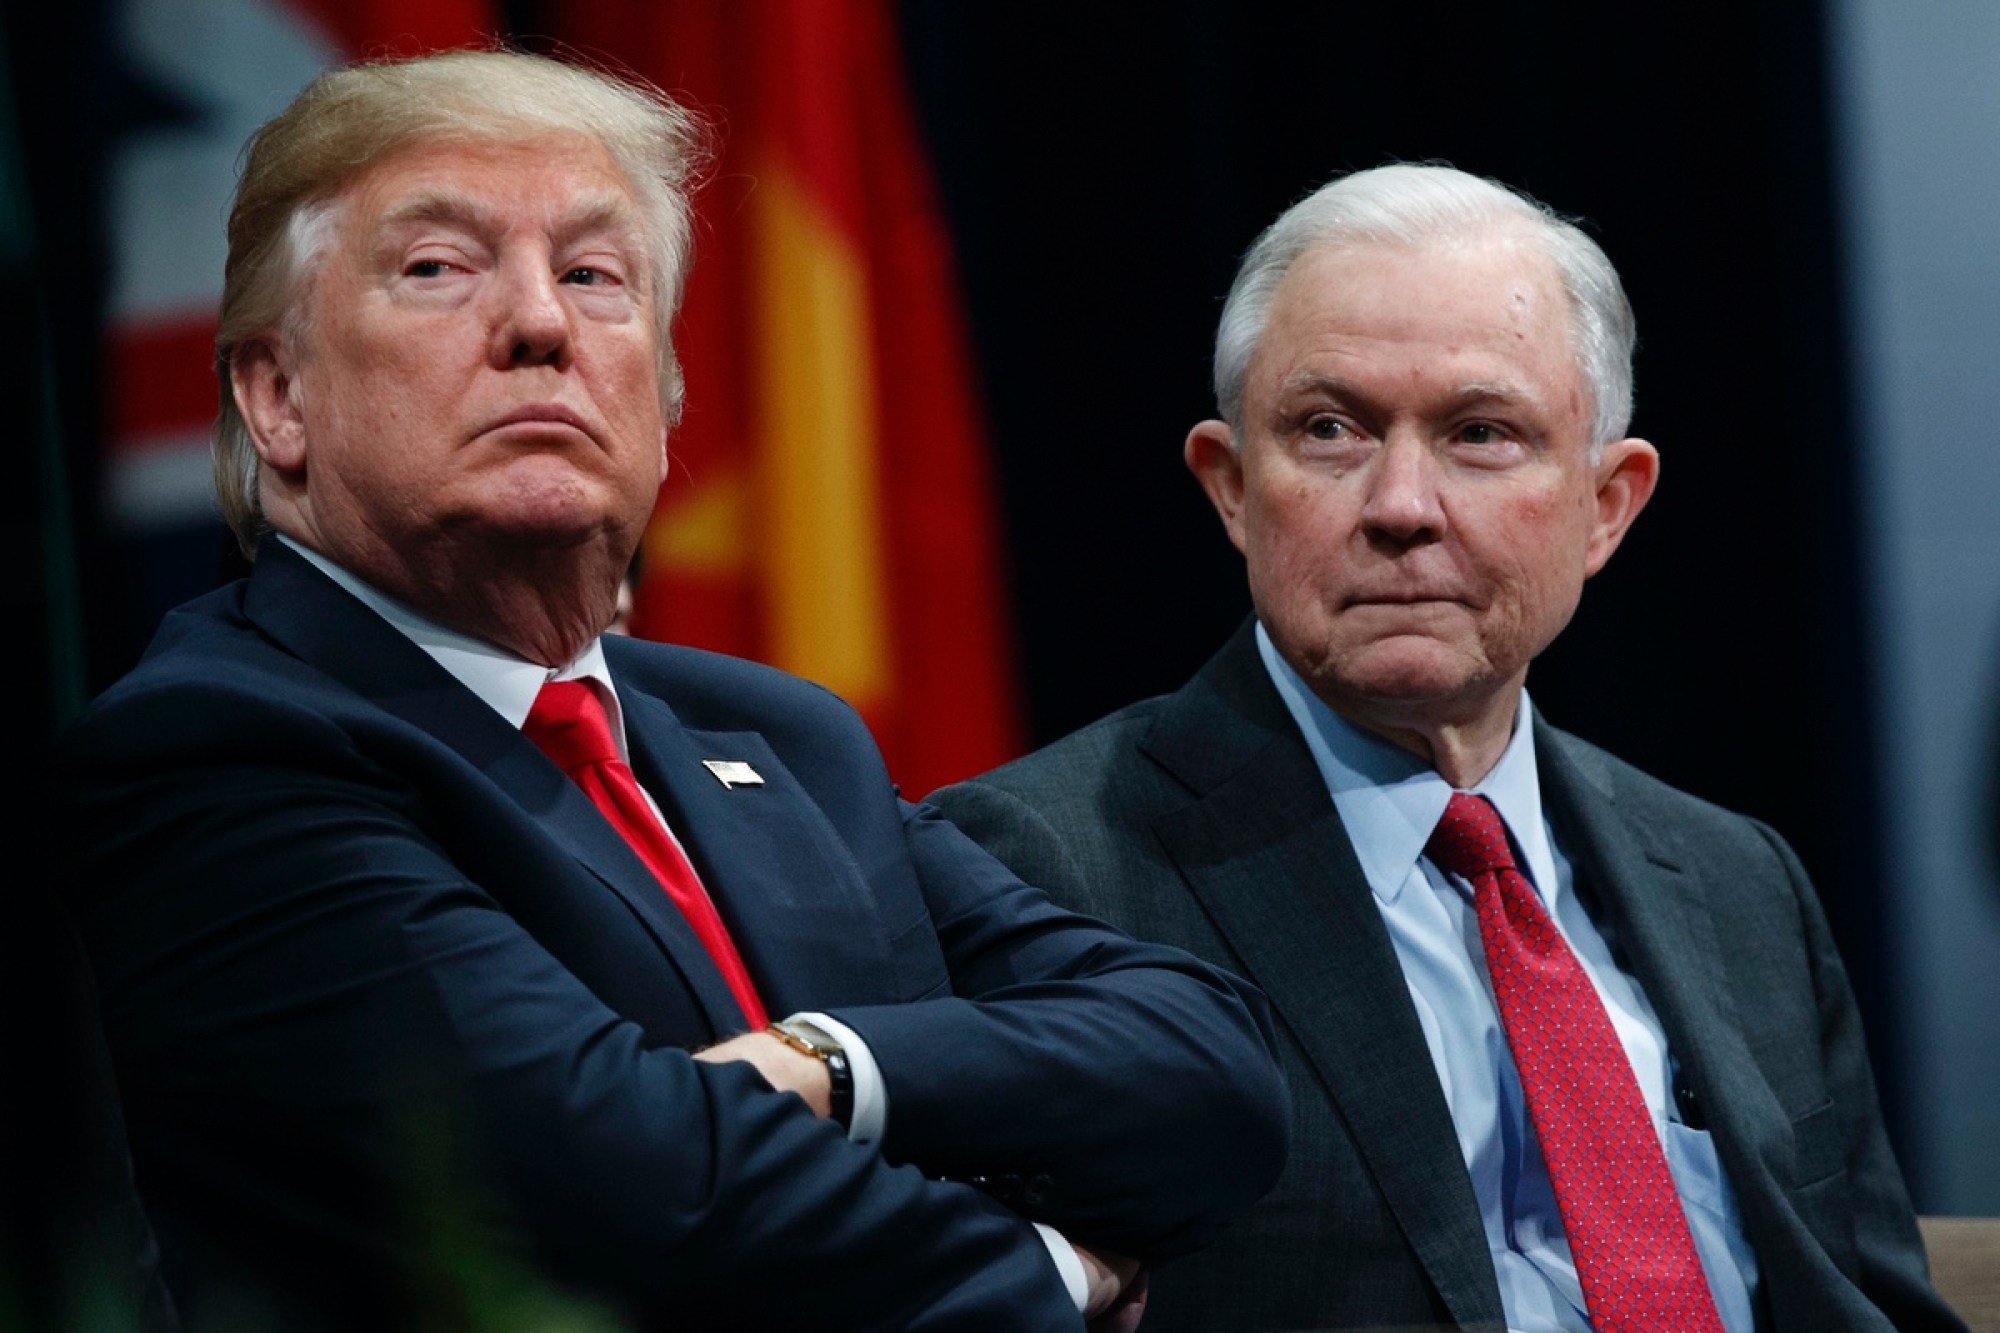 President Donald Trump sits with Attorney General Jeff Sessions during the FBI National Academy graduation ceremony in Quantico, Va. Dec. 15, 2017 (AP Photo/Evan Vucci, File)